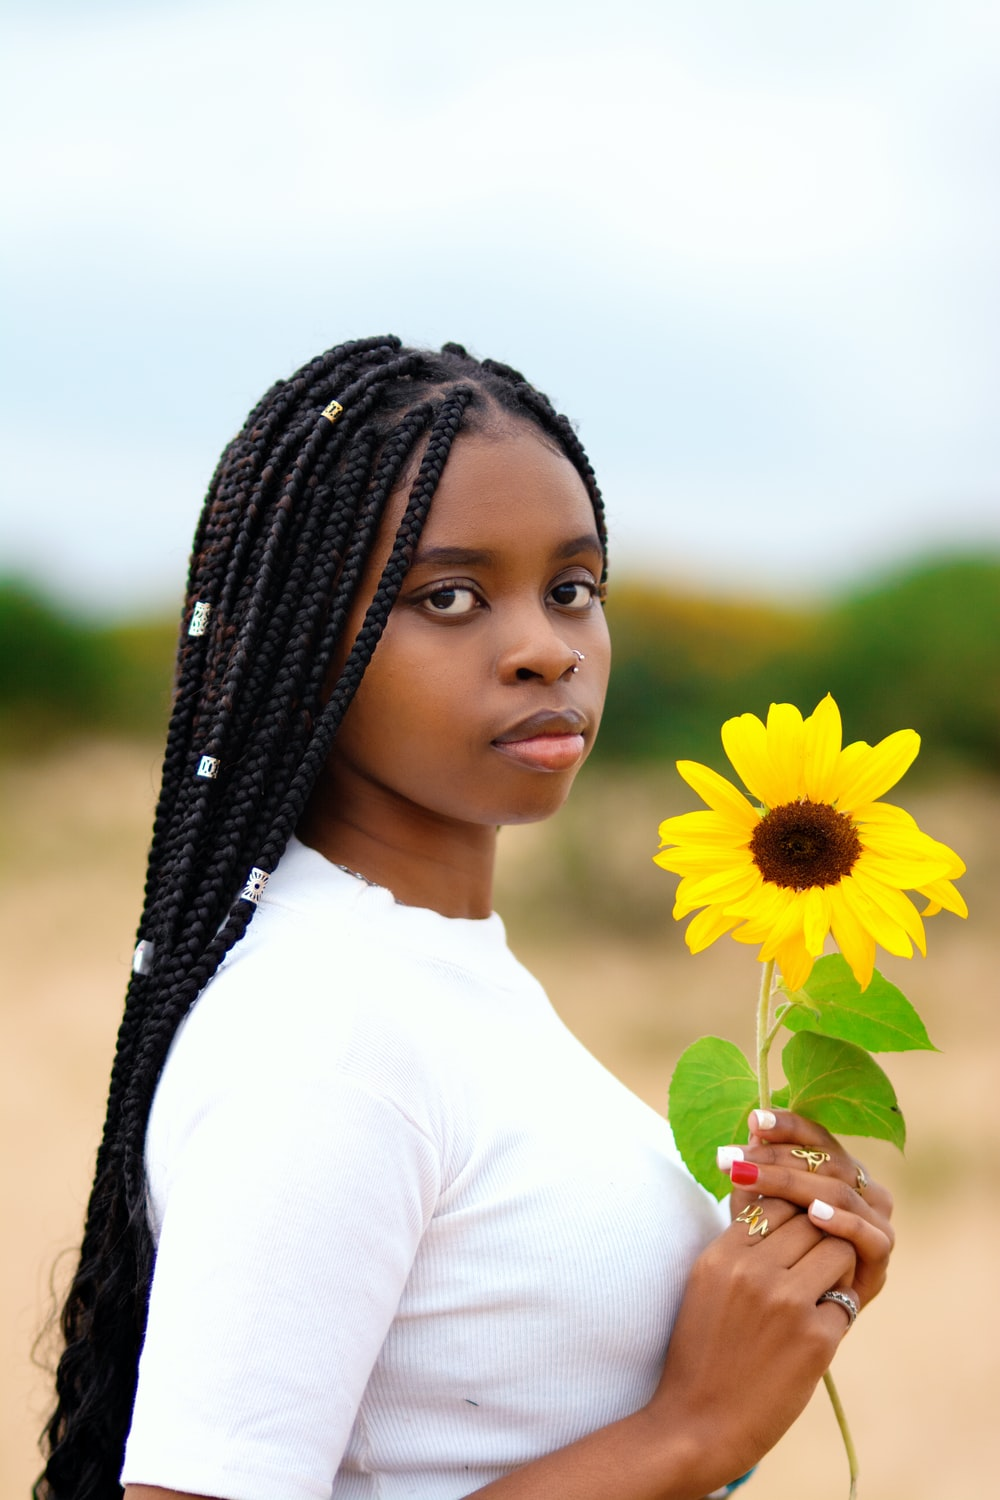 woman in white shirt holding yellow sunflower during daytime